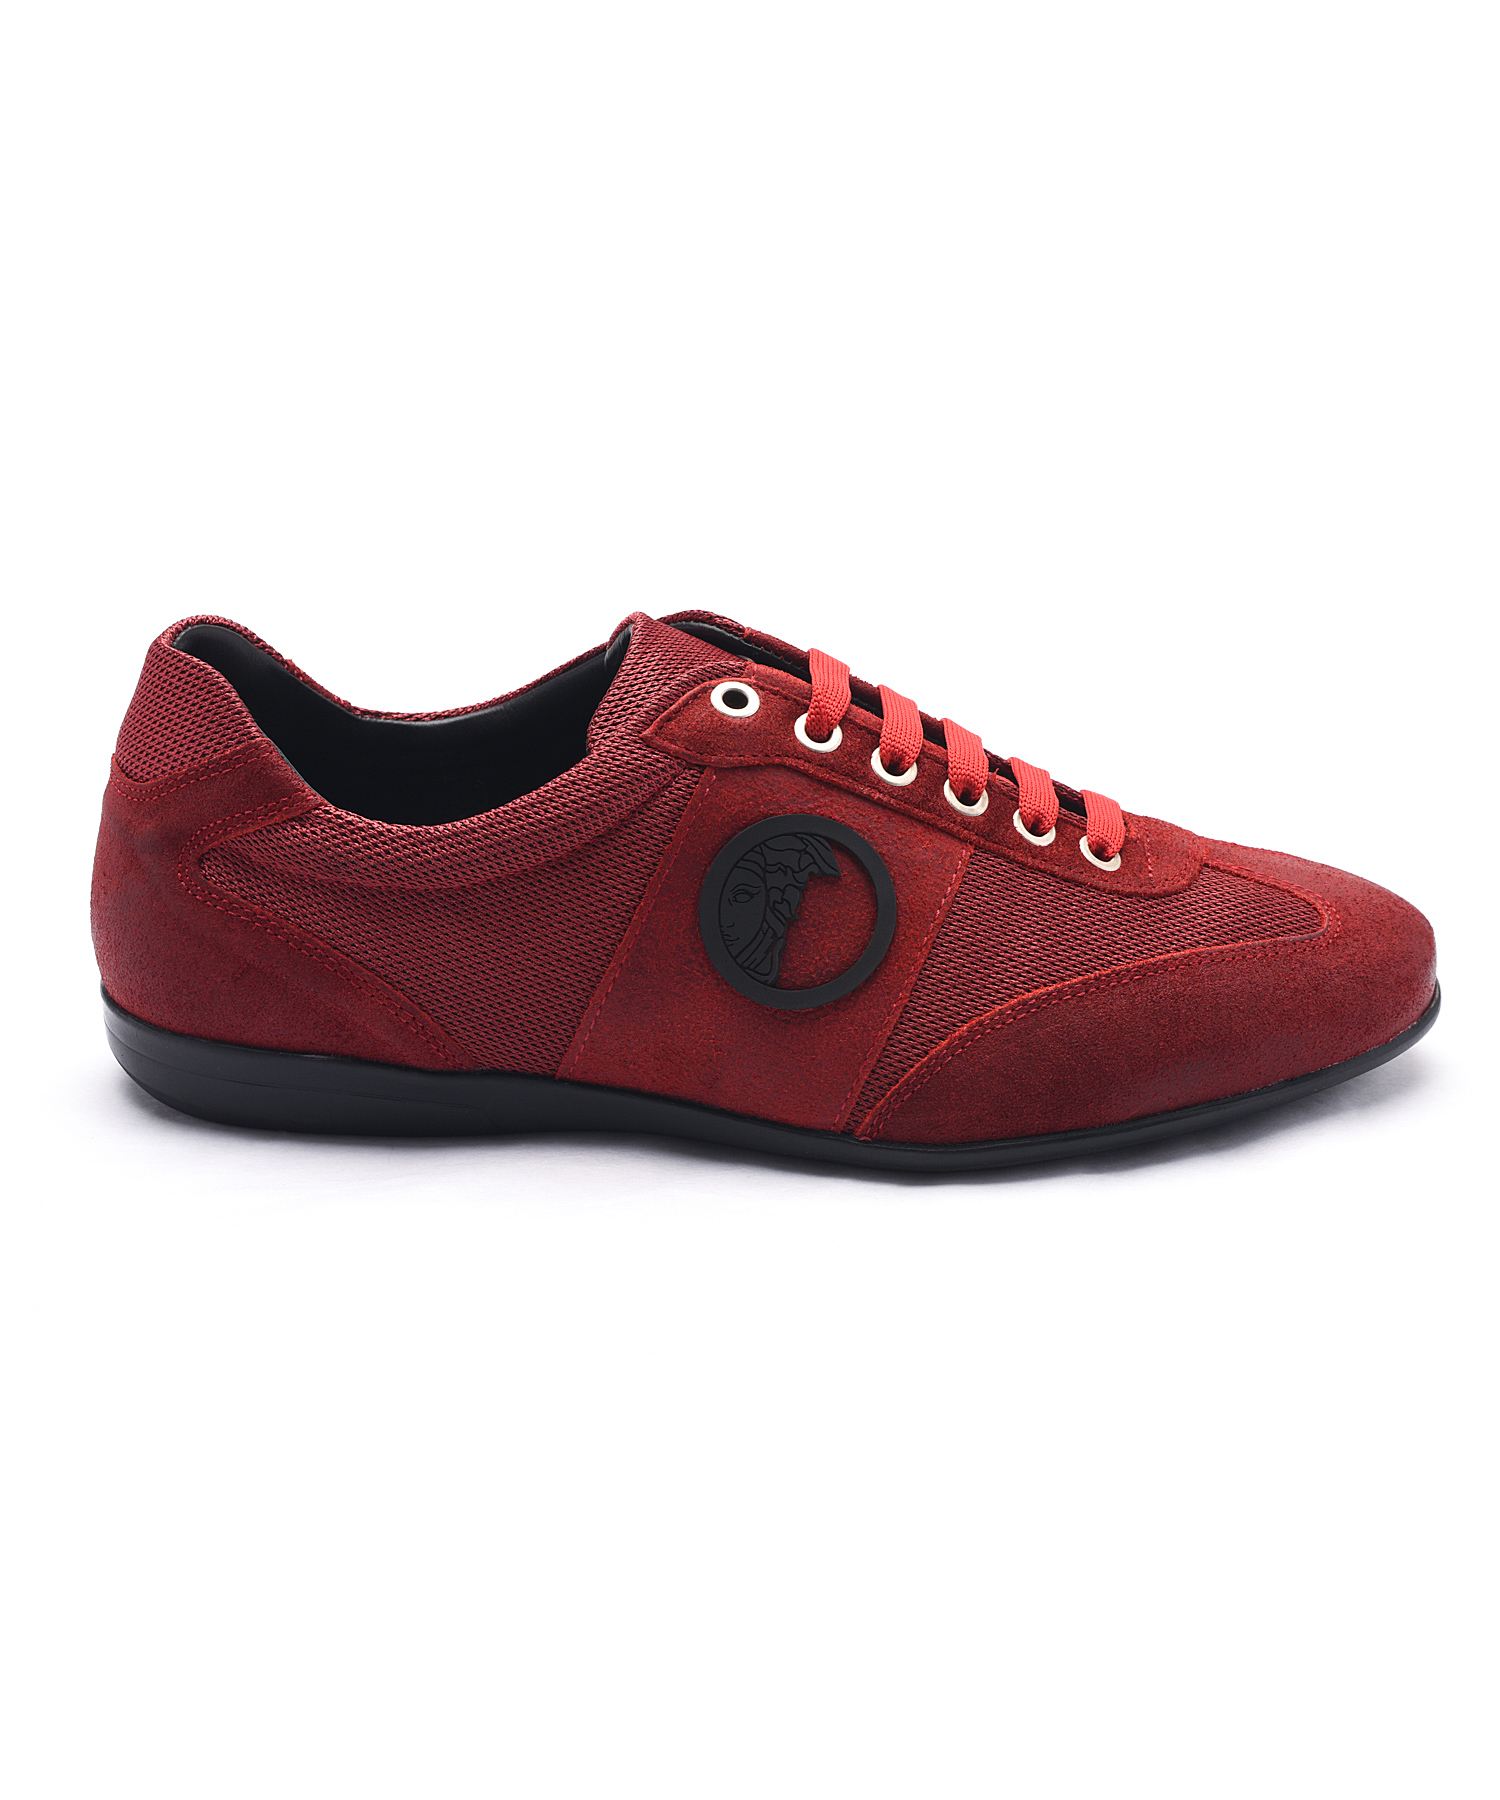 Versace medusa logo low top sneakers in red for men lyst